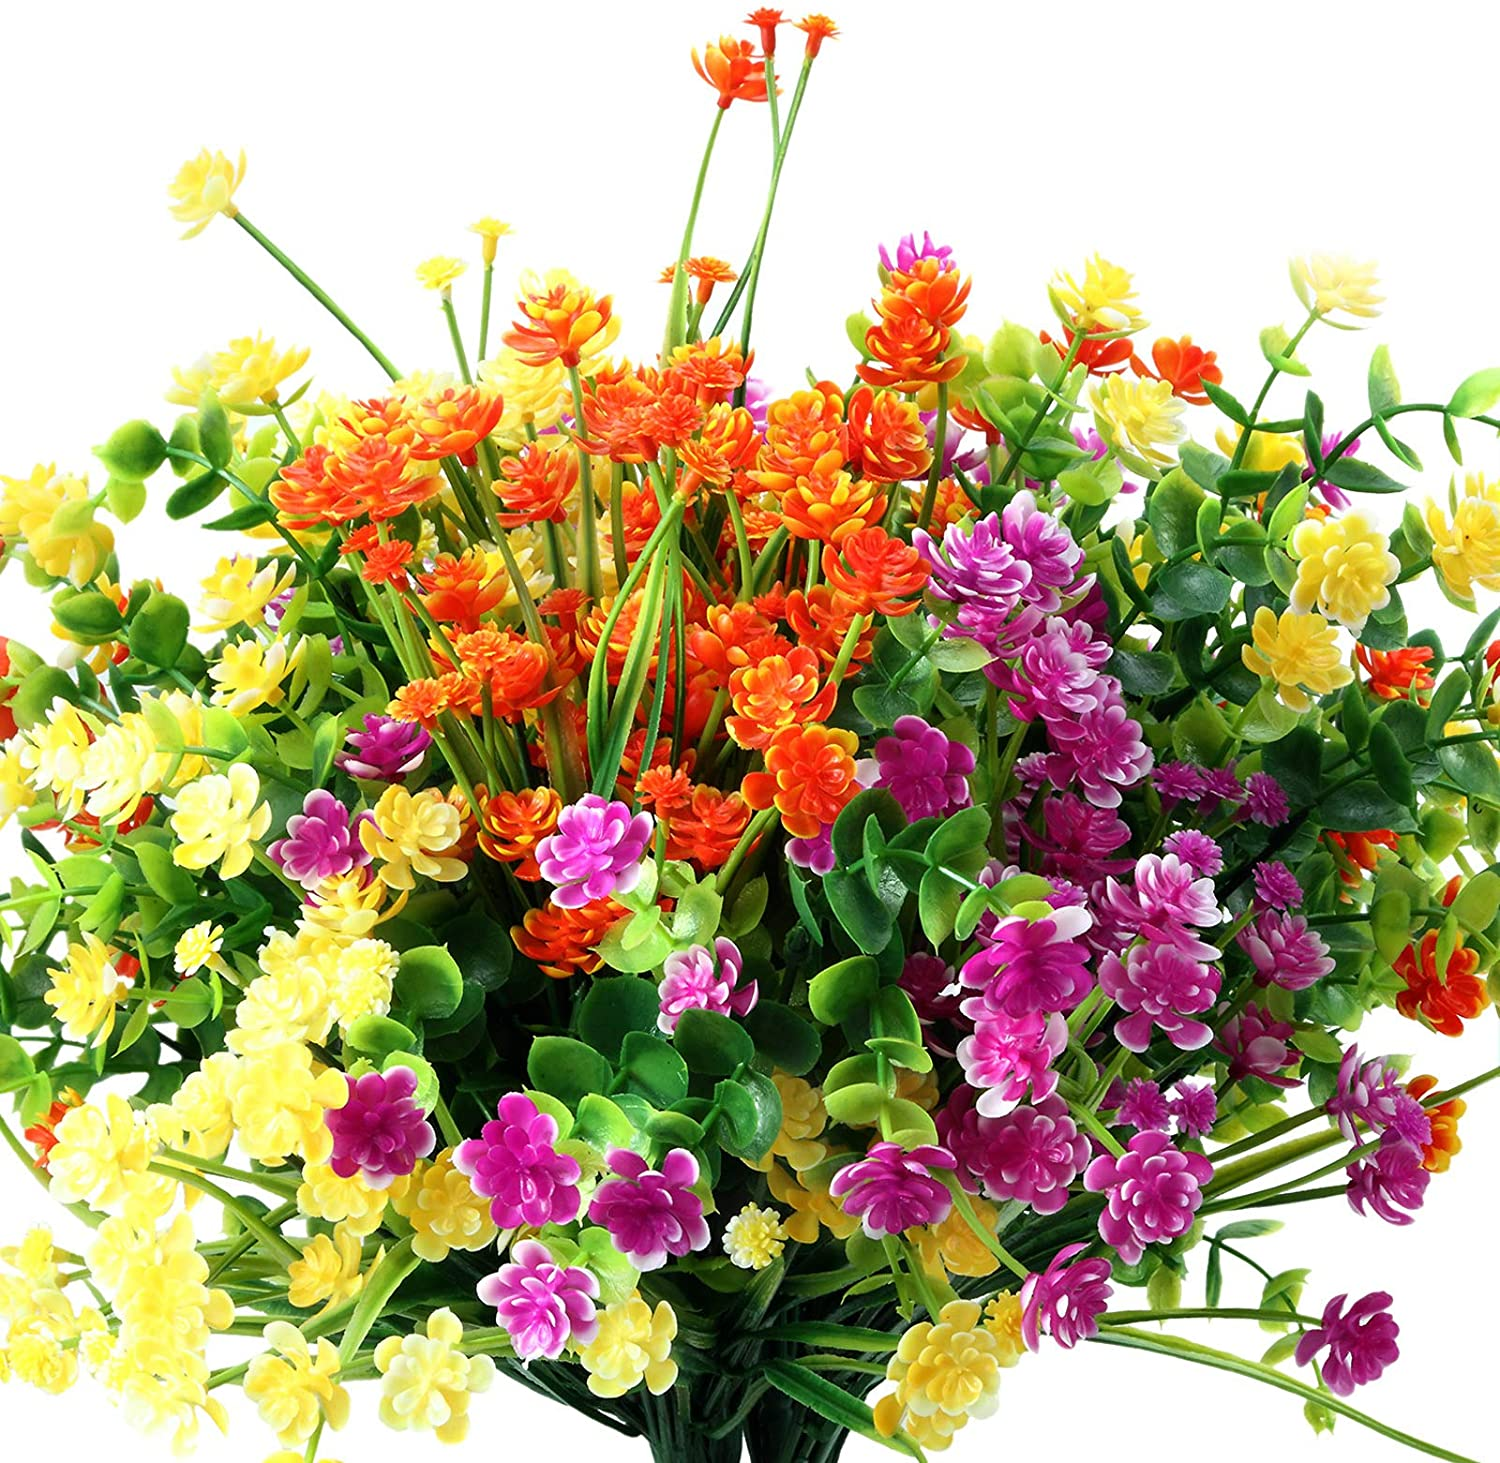 12 online shopping Pieces Recommendation Artificial Flowers 6 Resistant Shrubs Outdoor UV Types